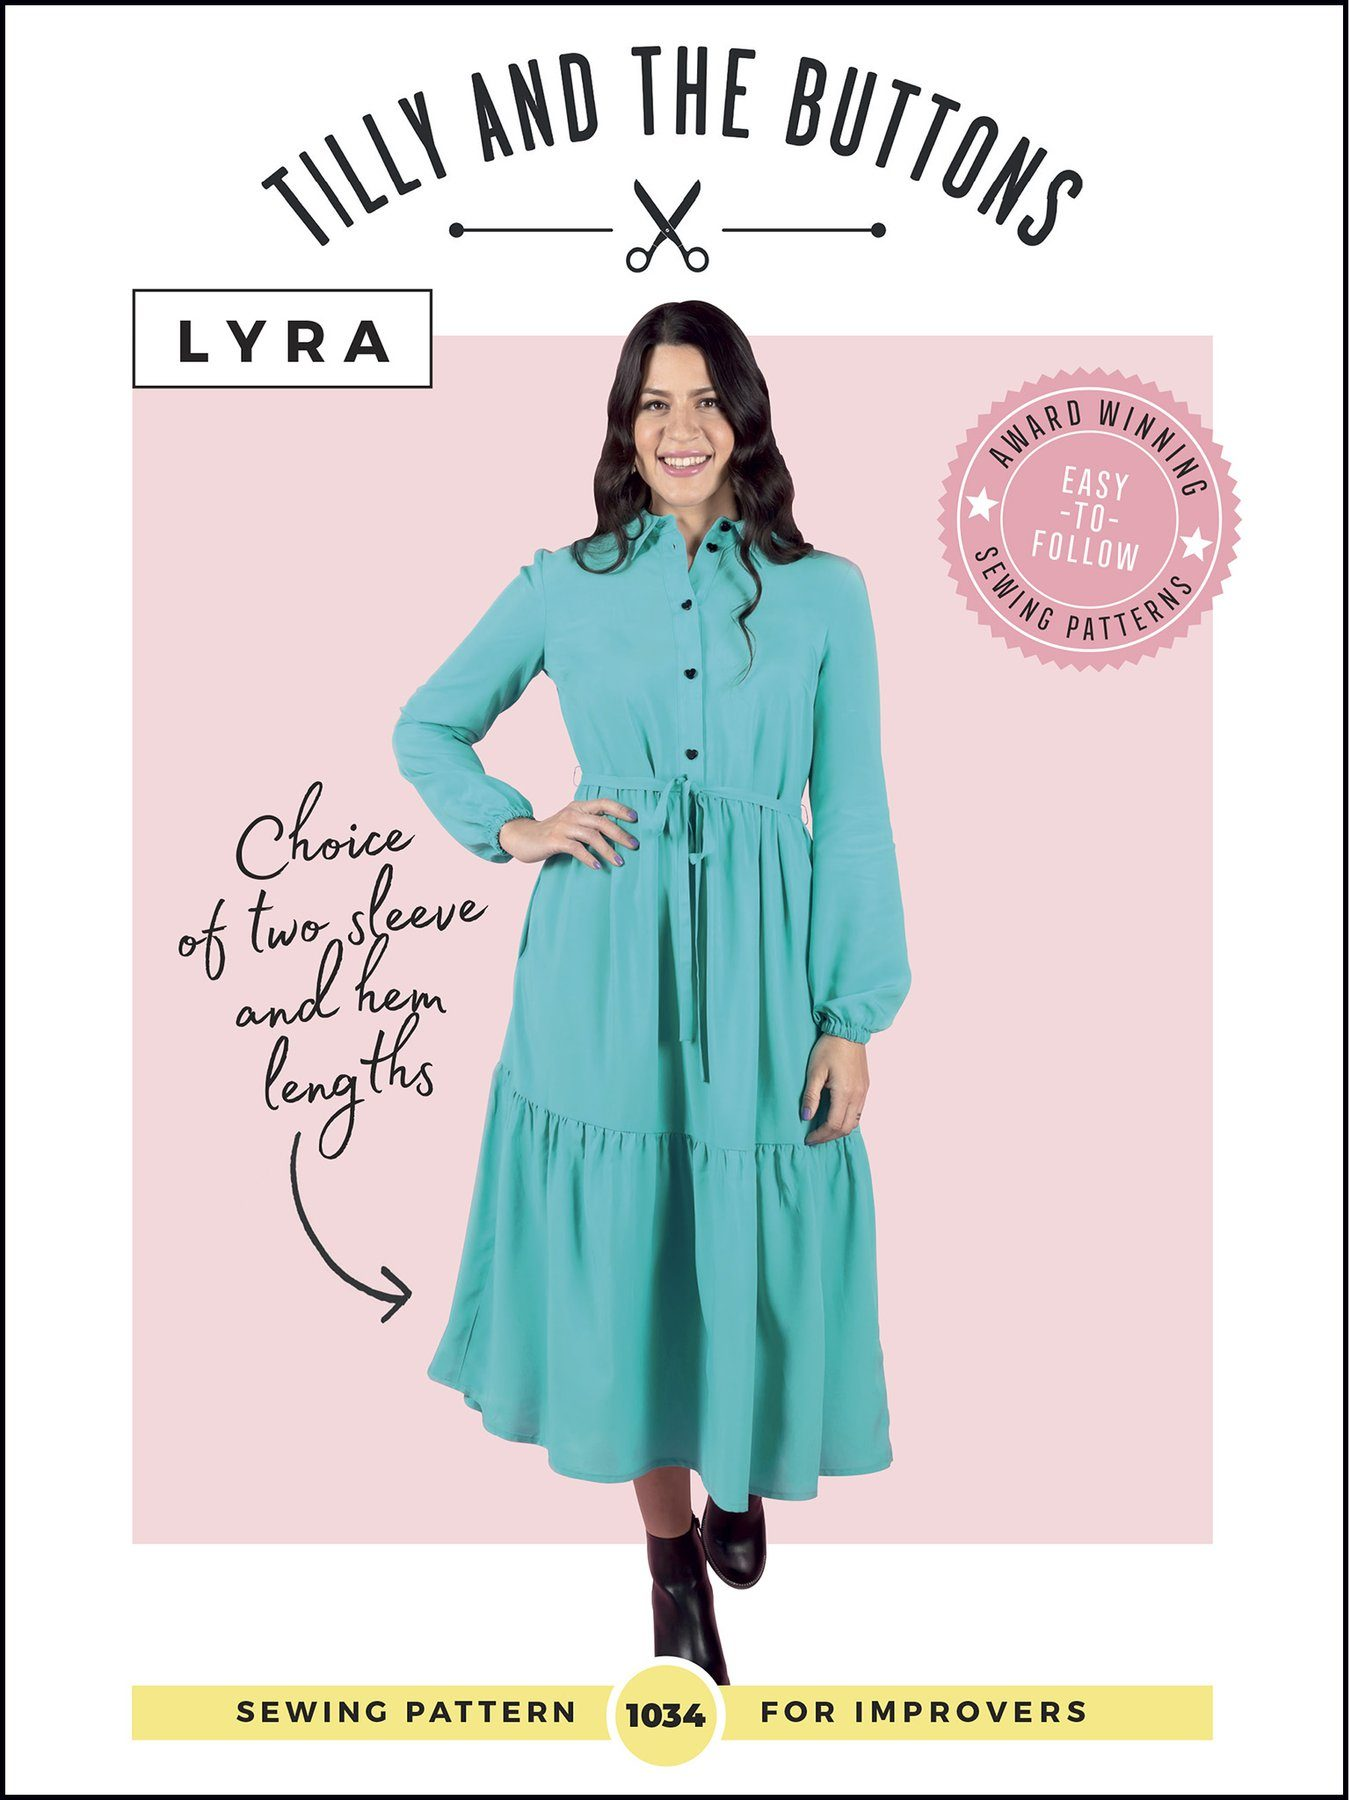 New Tilly and the Buttons Pattern – The Lyra Dress